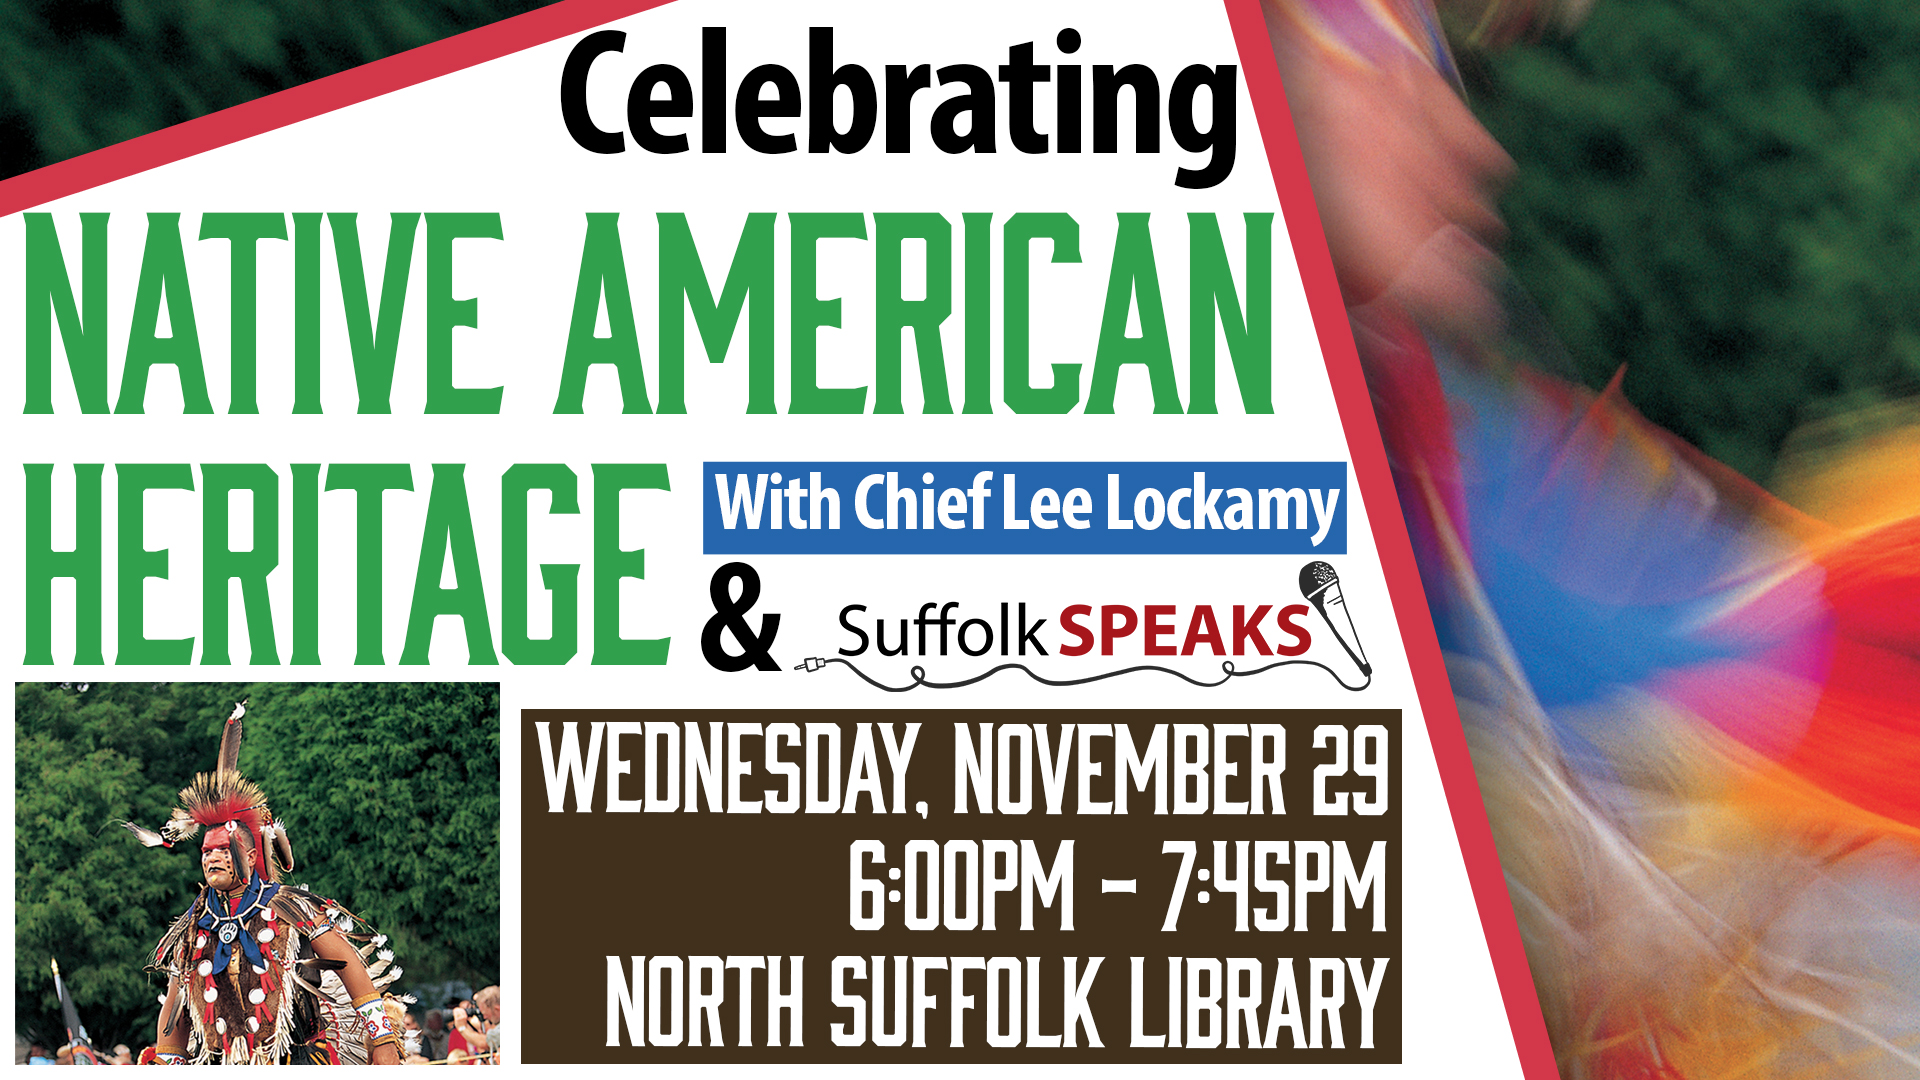 Celebrating Native American Heritage with Lee Lockamy and Suffolk Speaks